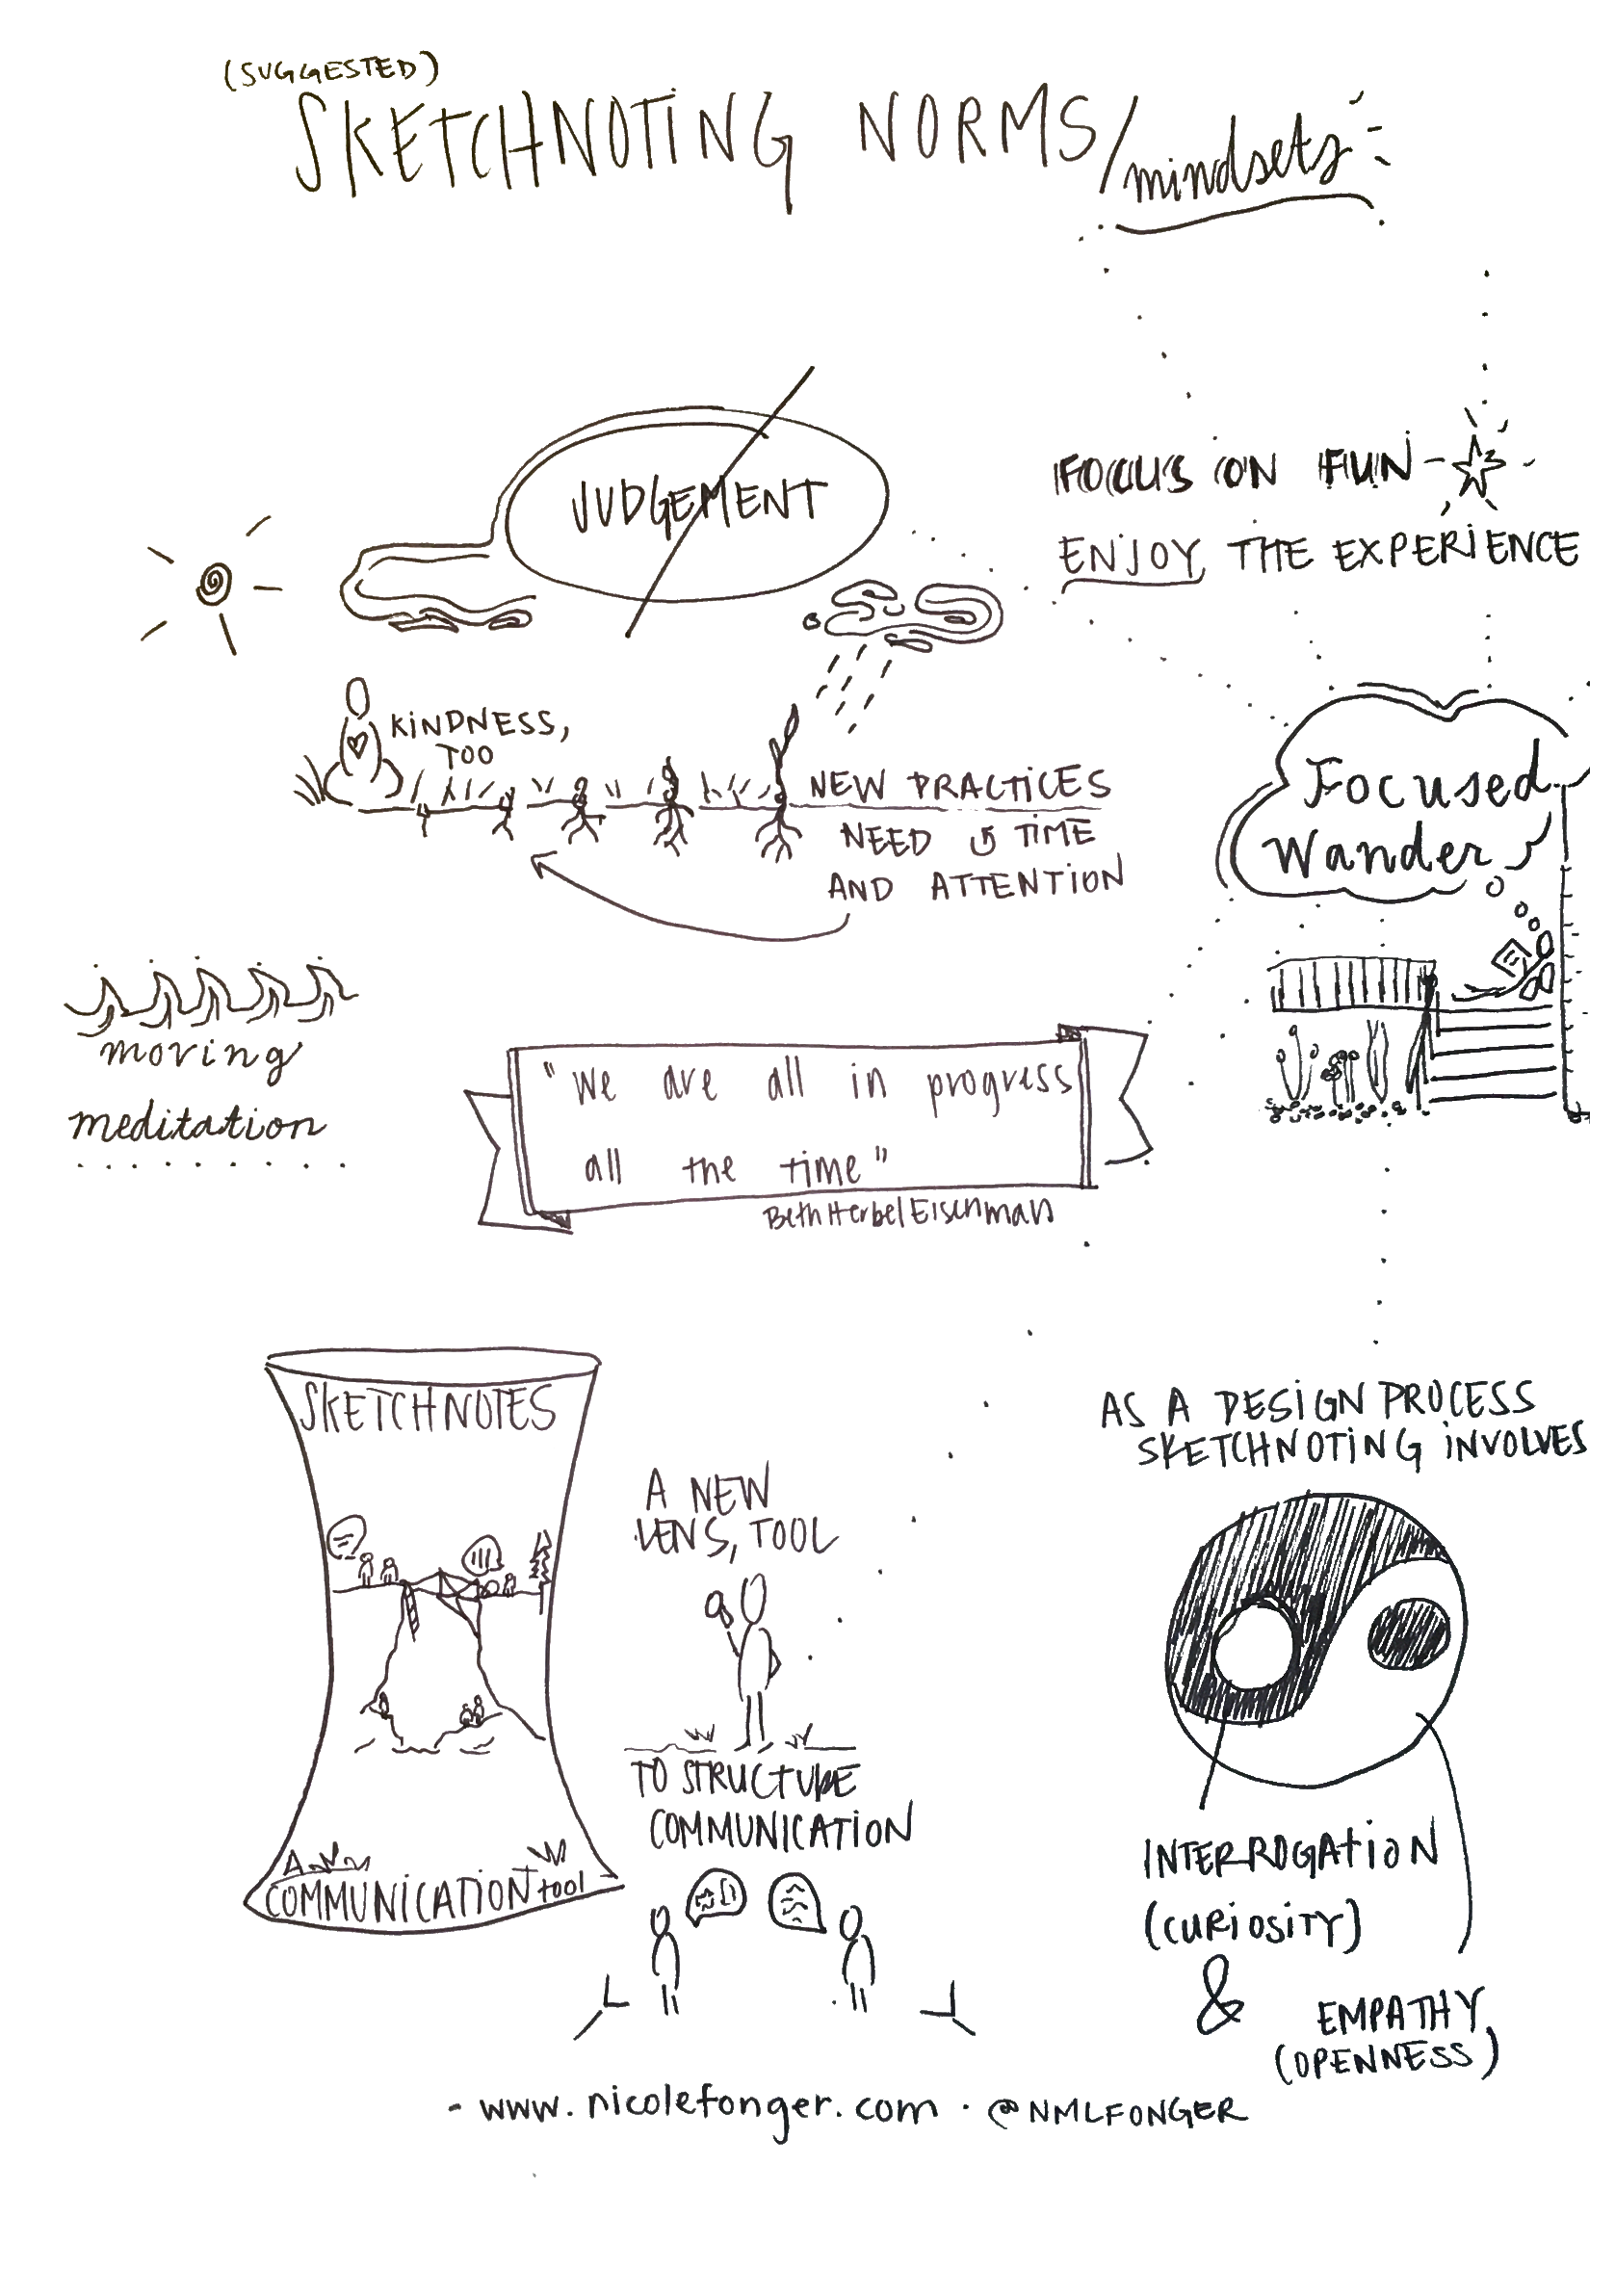 Sketchnoting norms and mindsets